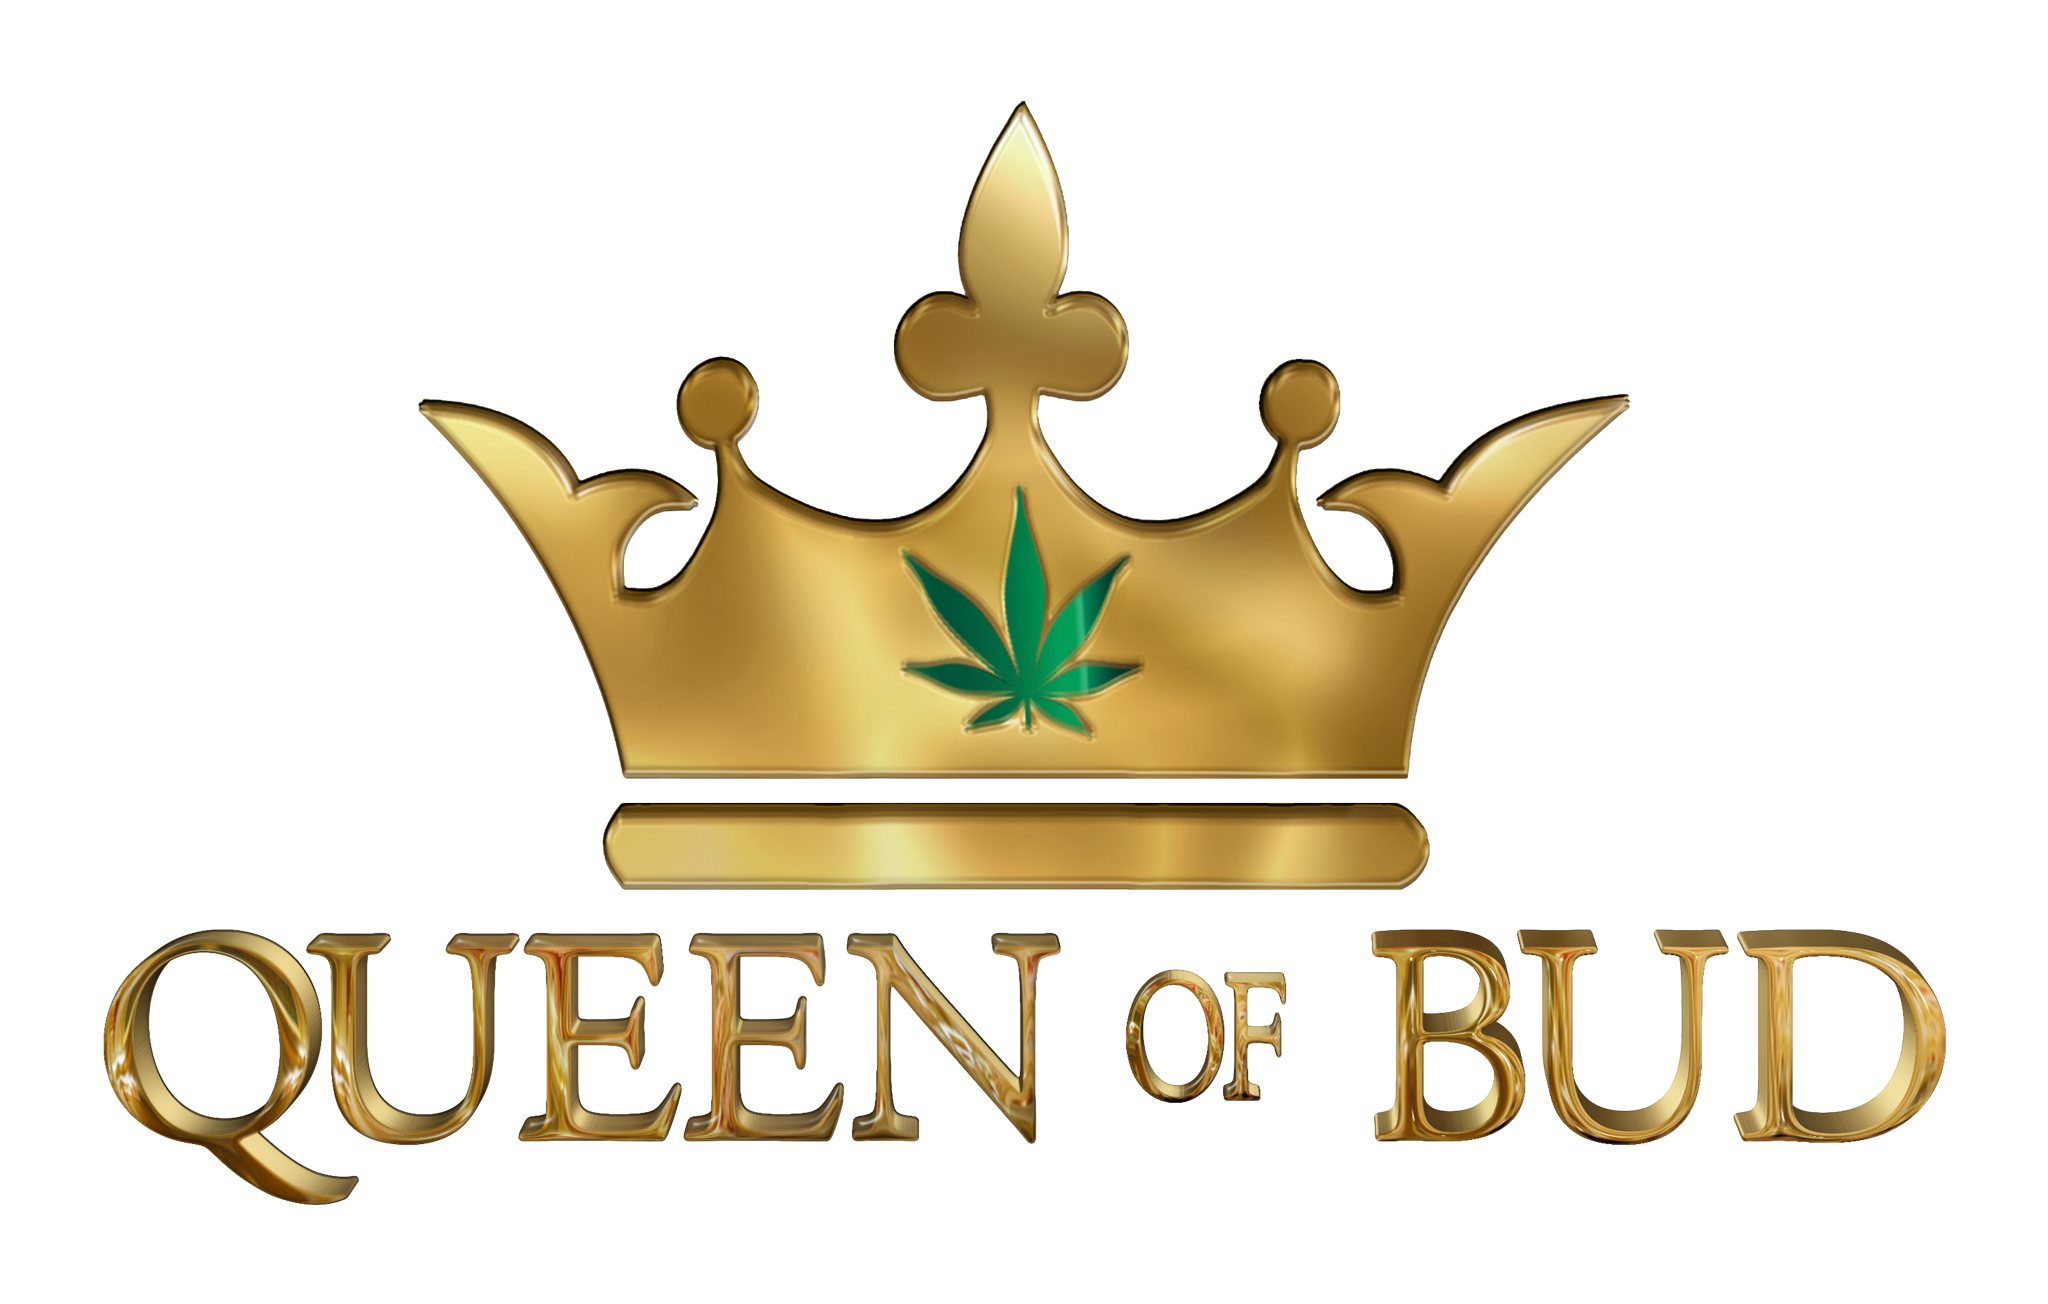 Queen of Bud